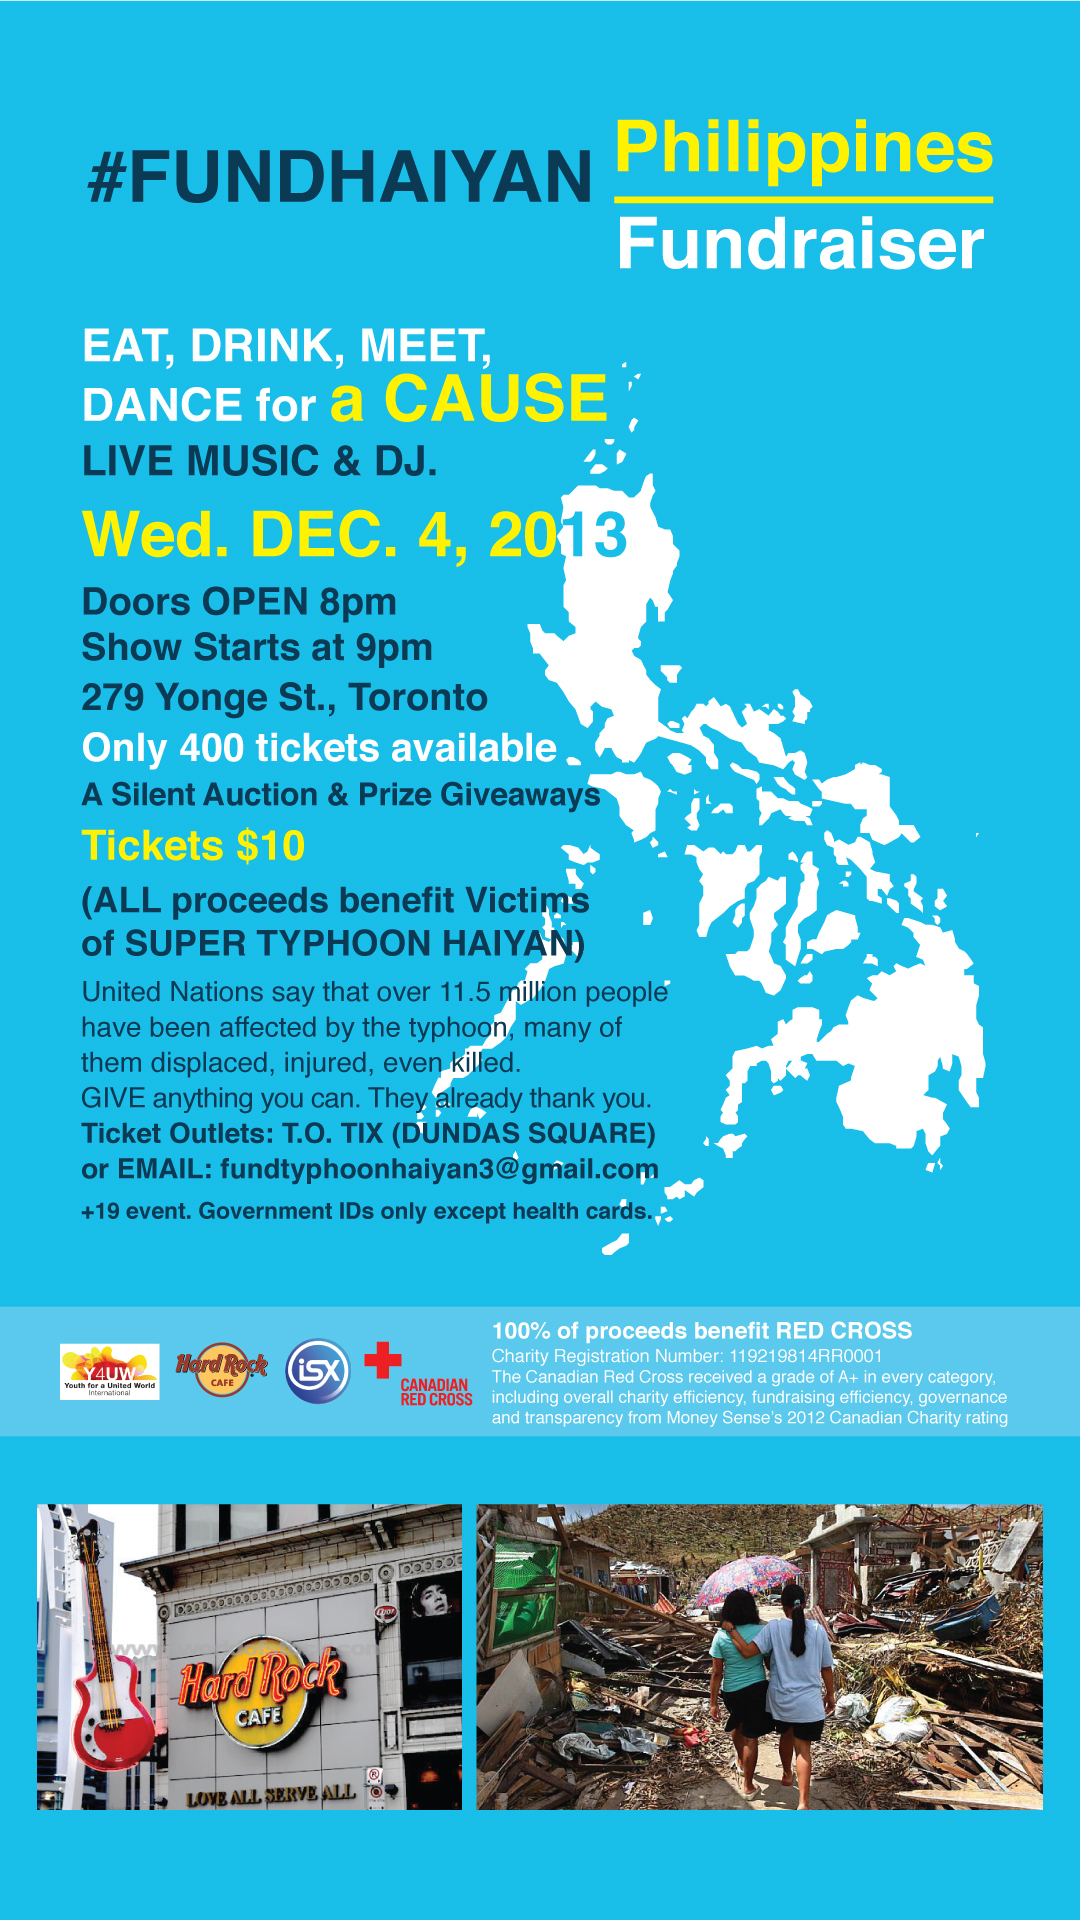 FundHaiyan - Eat, Drink, Meet, Dance for a Cause